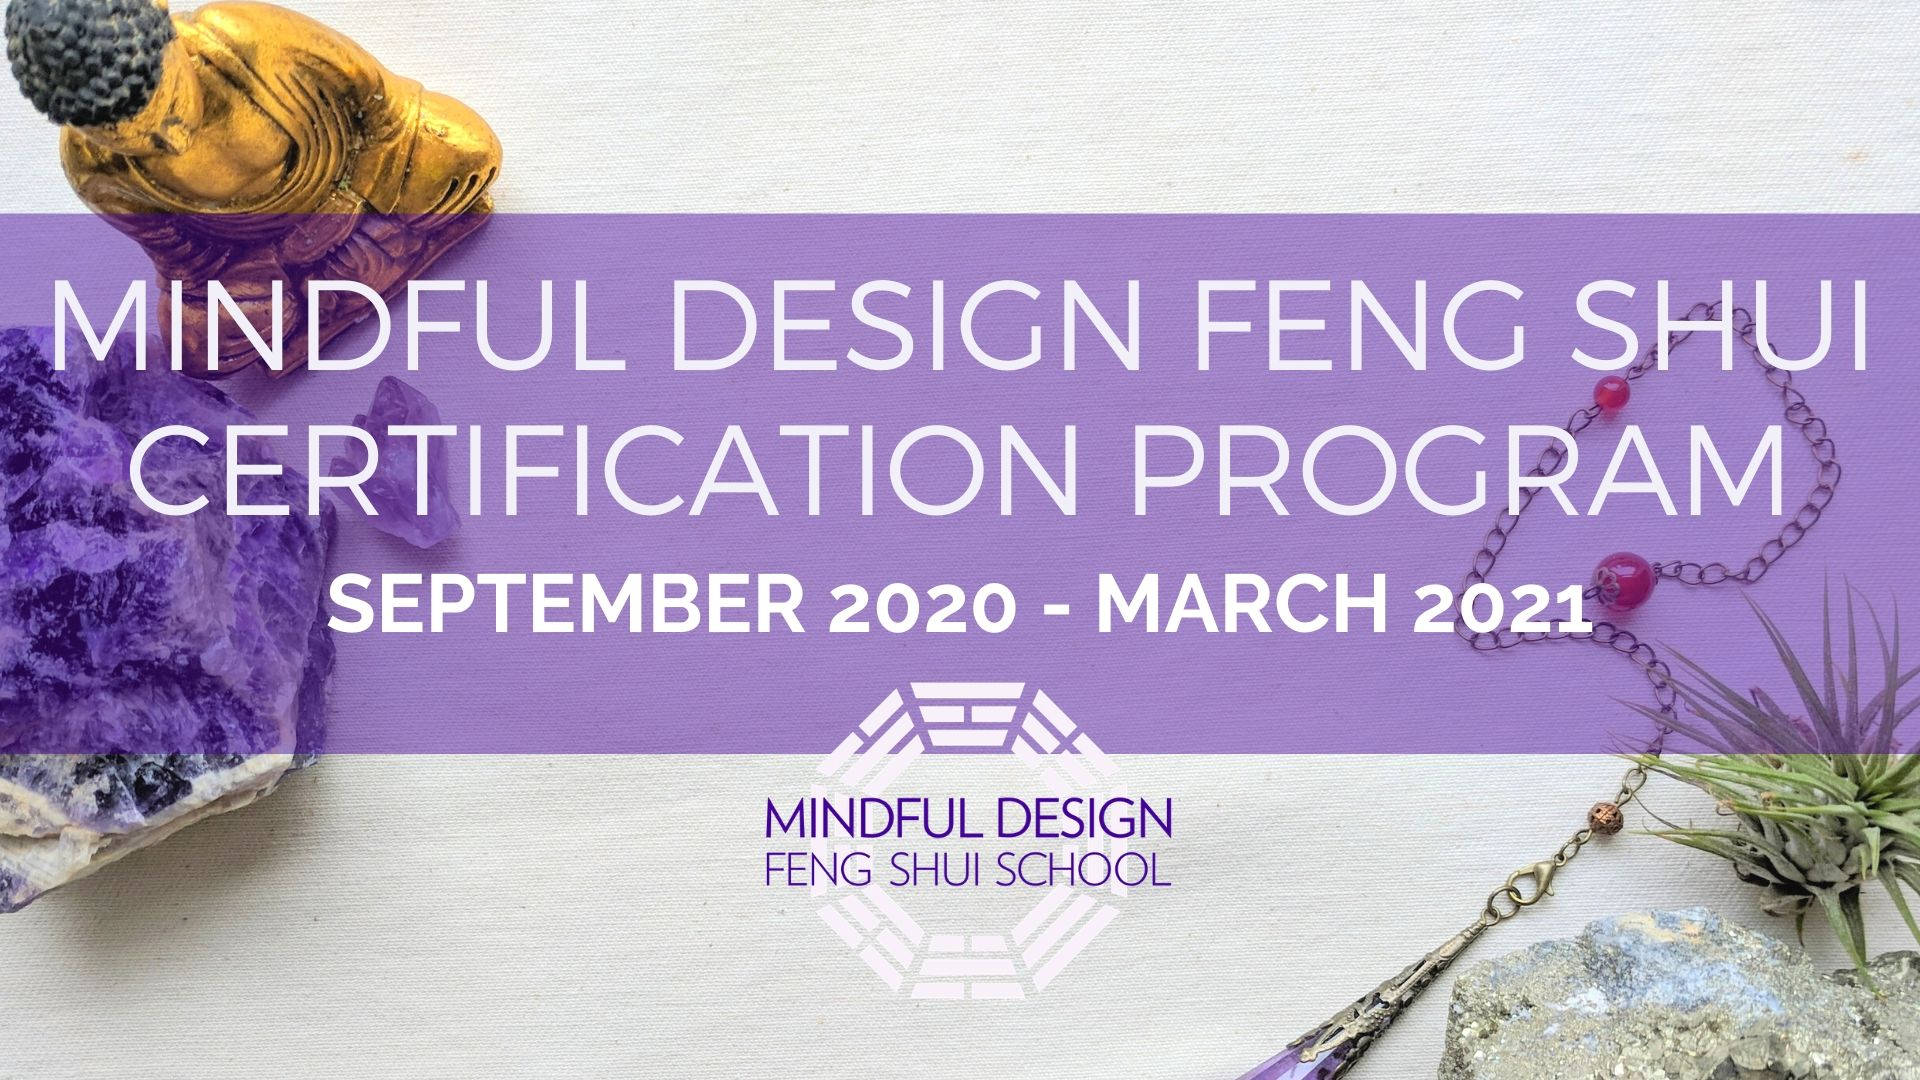 Class Of Spring 2021 Mindful Design Feng Shui Certification Program